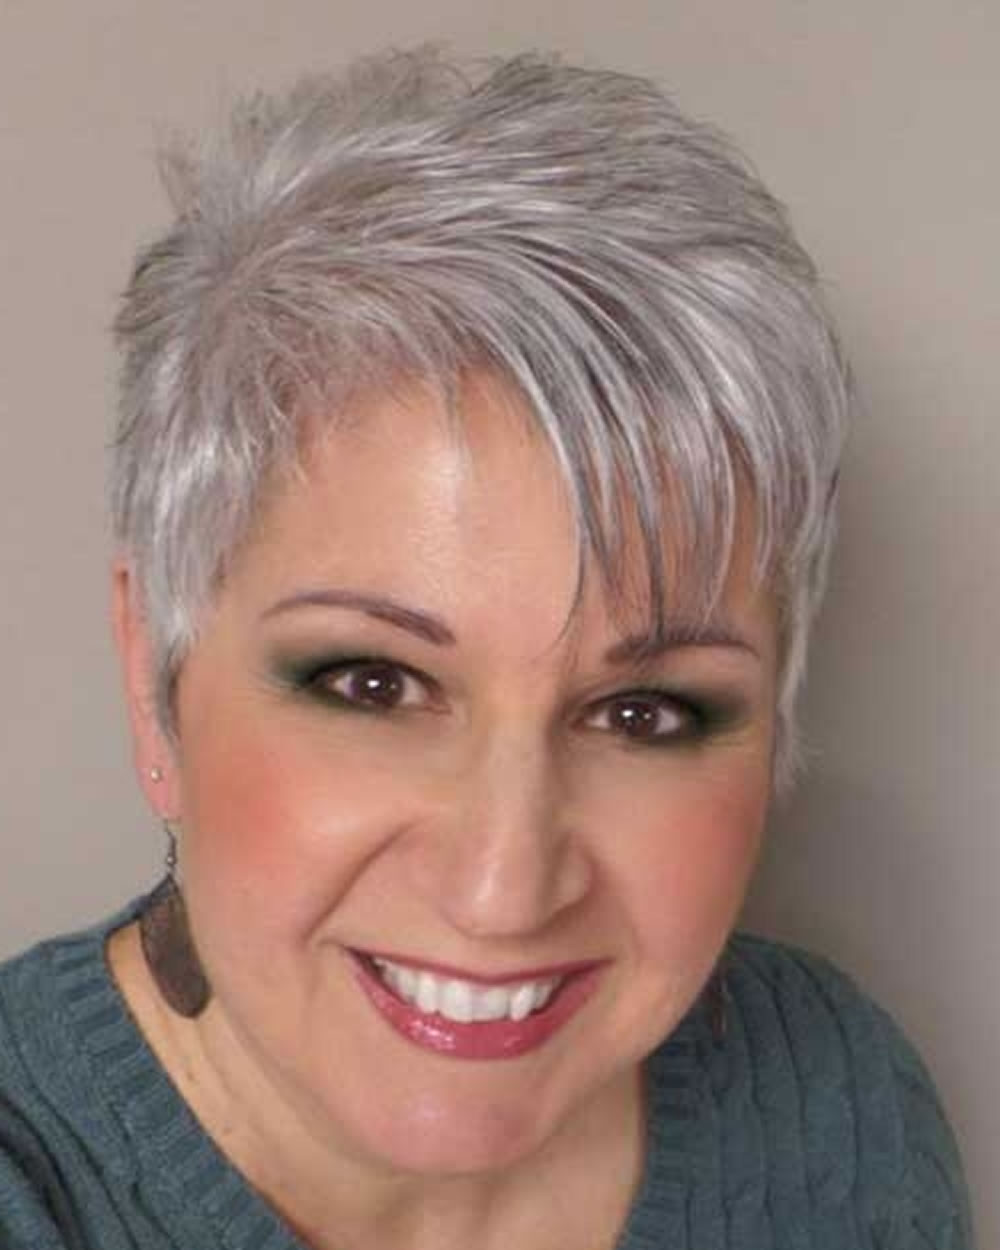 Best ideas about Short Haircuts For Women Over 50 2019 . Save or Pin 15 Best Pixie Hairstyles For Women Over 50 Now.